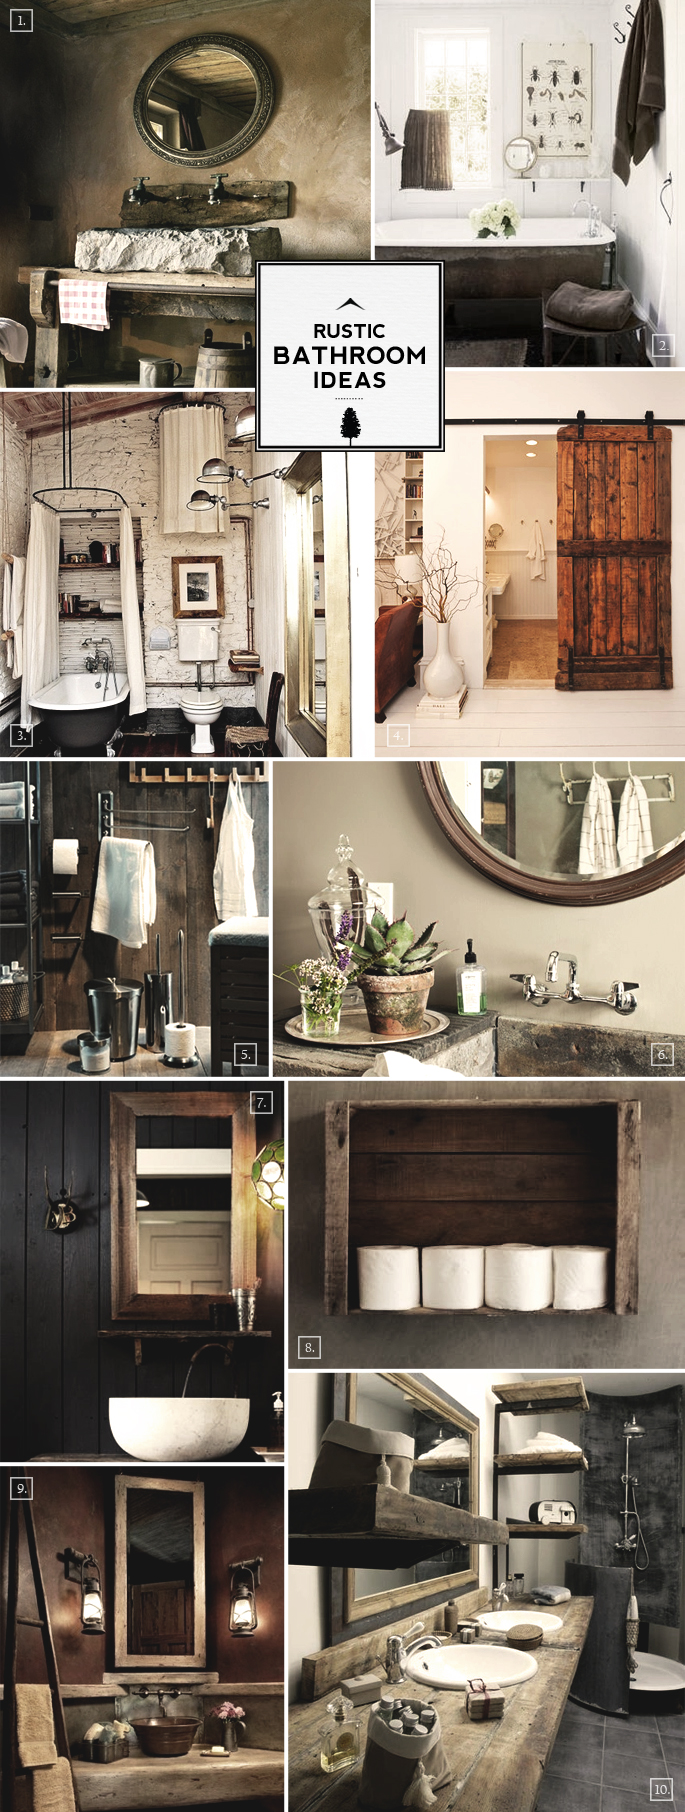 Home Decor Interiors Bathroom : Rustic bathroom ideas and decor tips home tree atlas